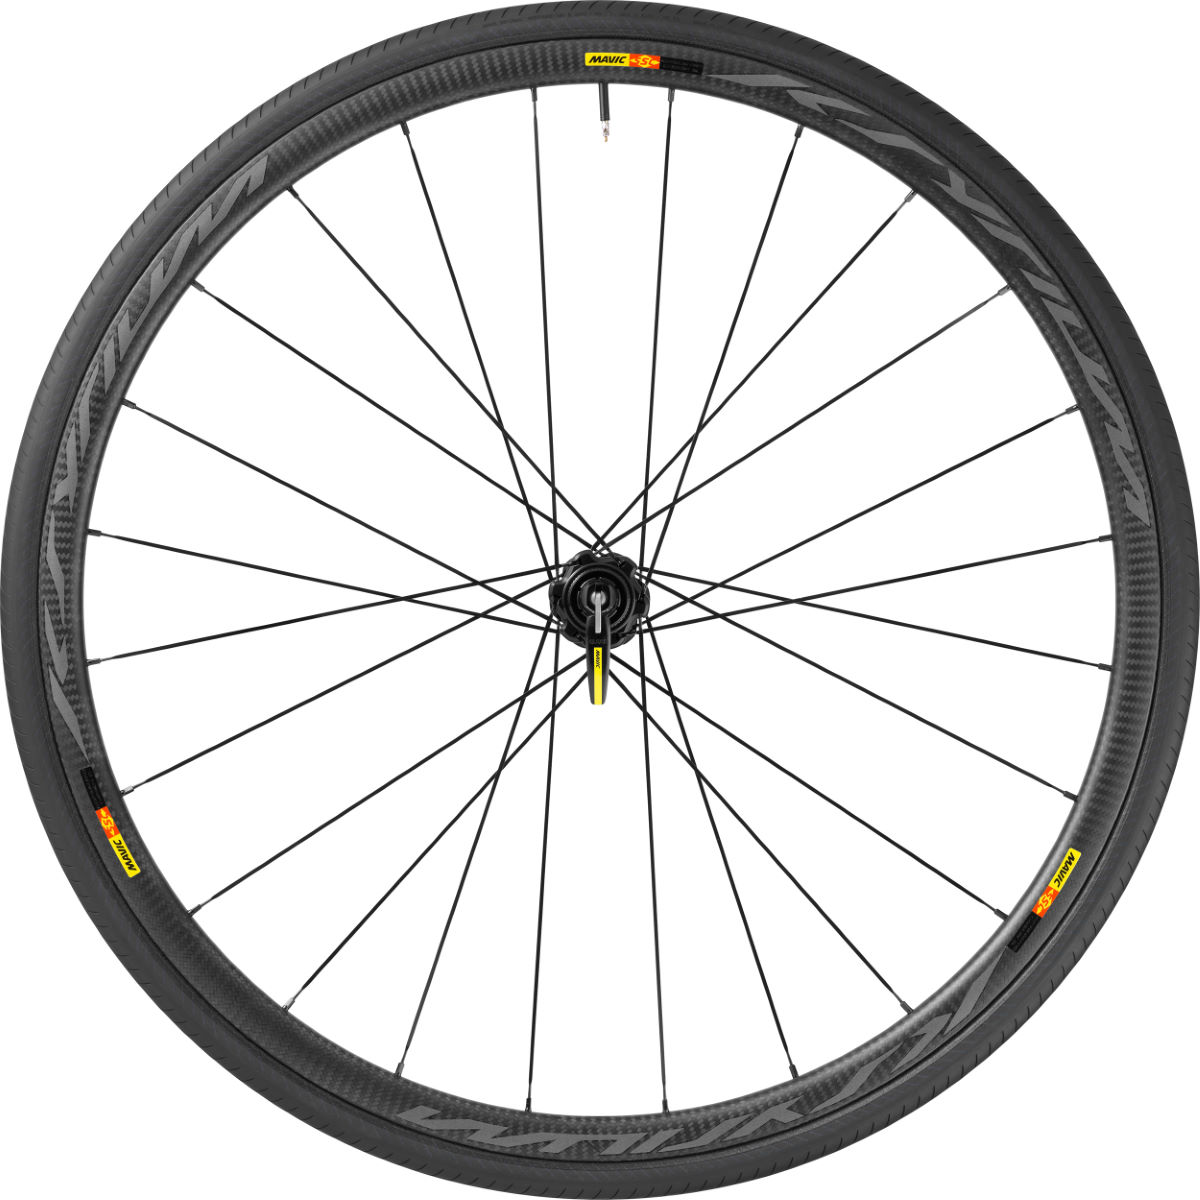 Roue avant Mavic Ksyrium Pro SL (carbone, disque, WTS) - 700c - Clincher Black - 6 Bolt Roues performance